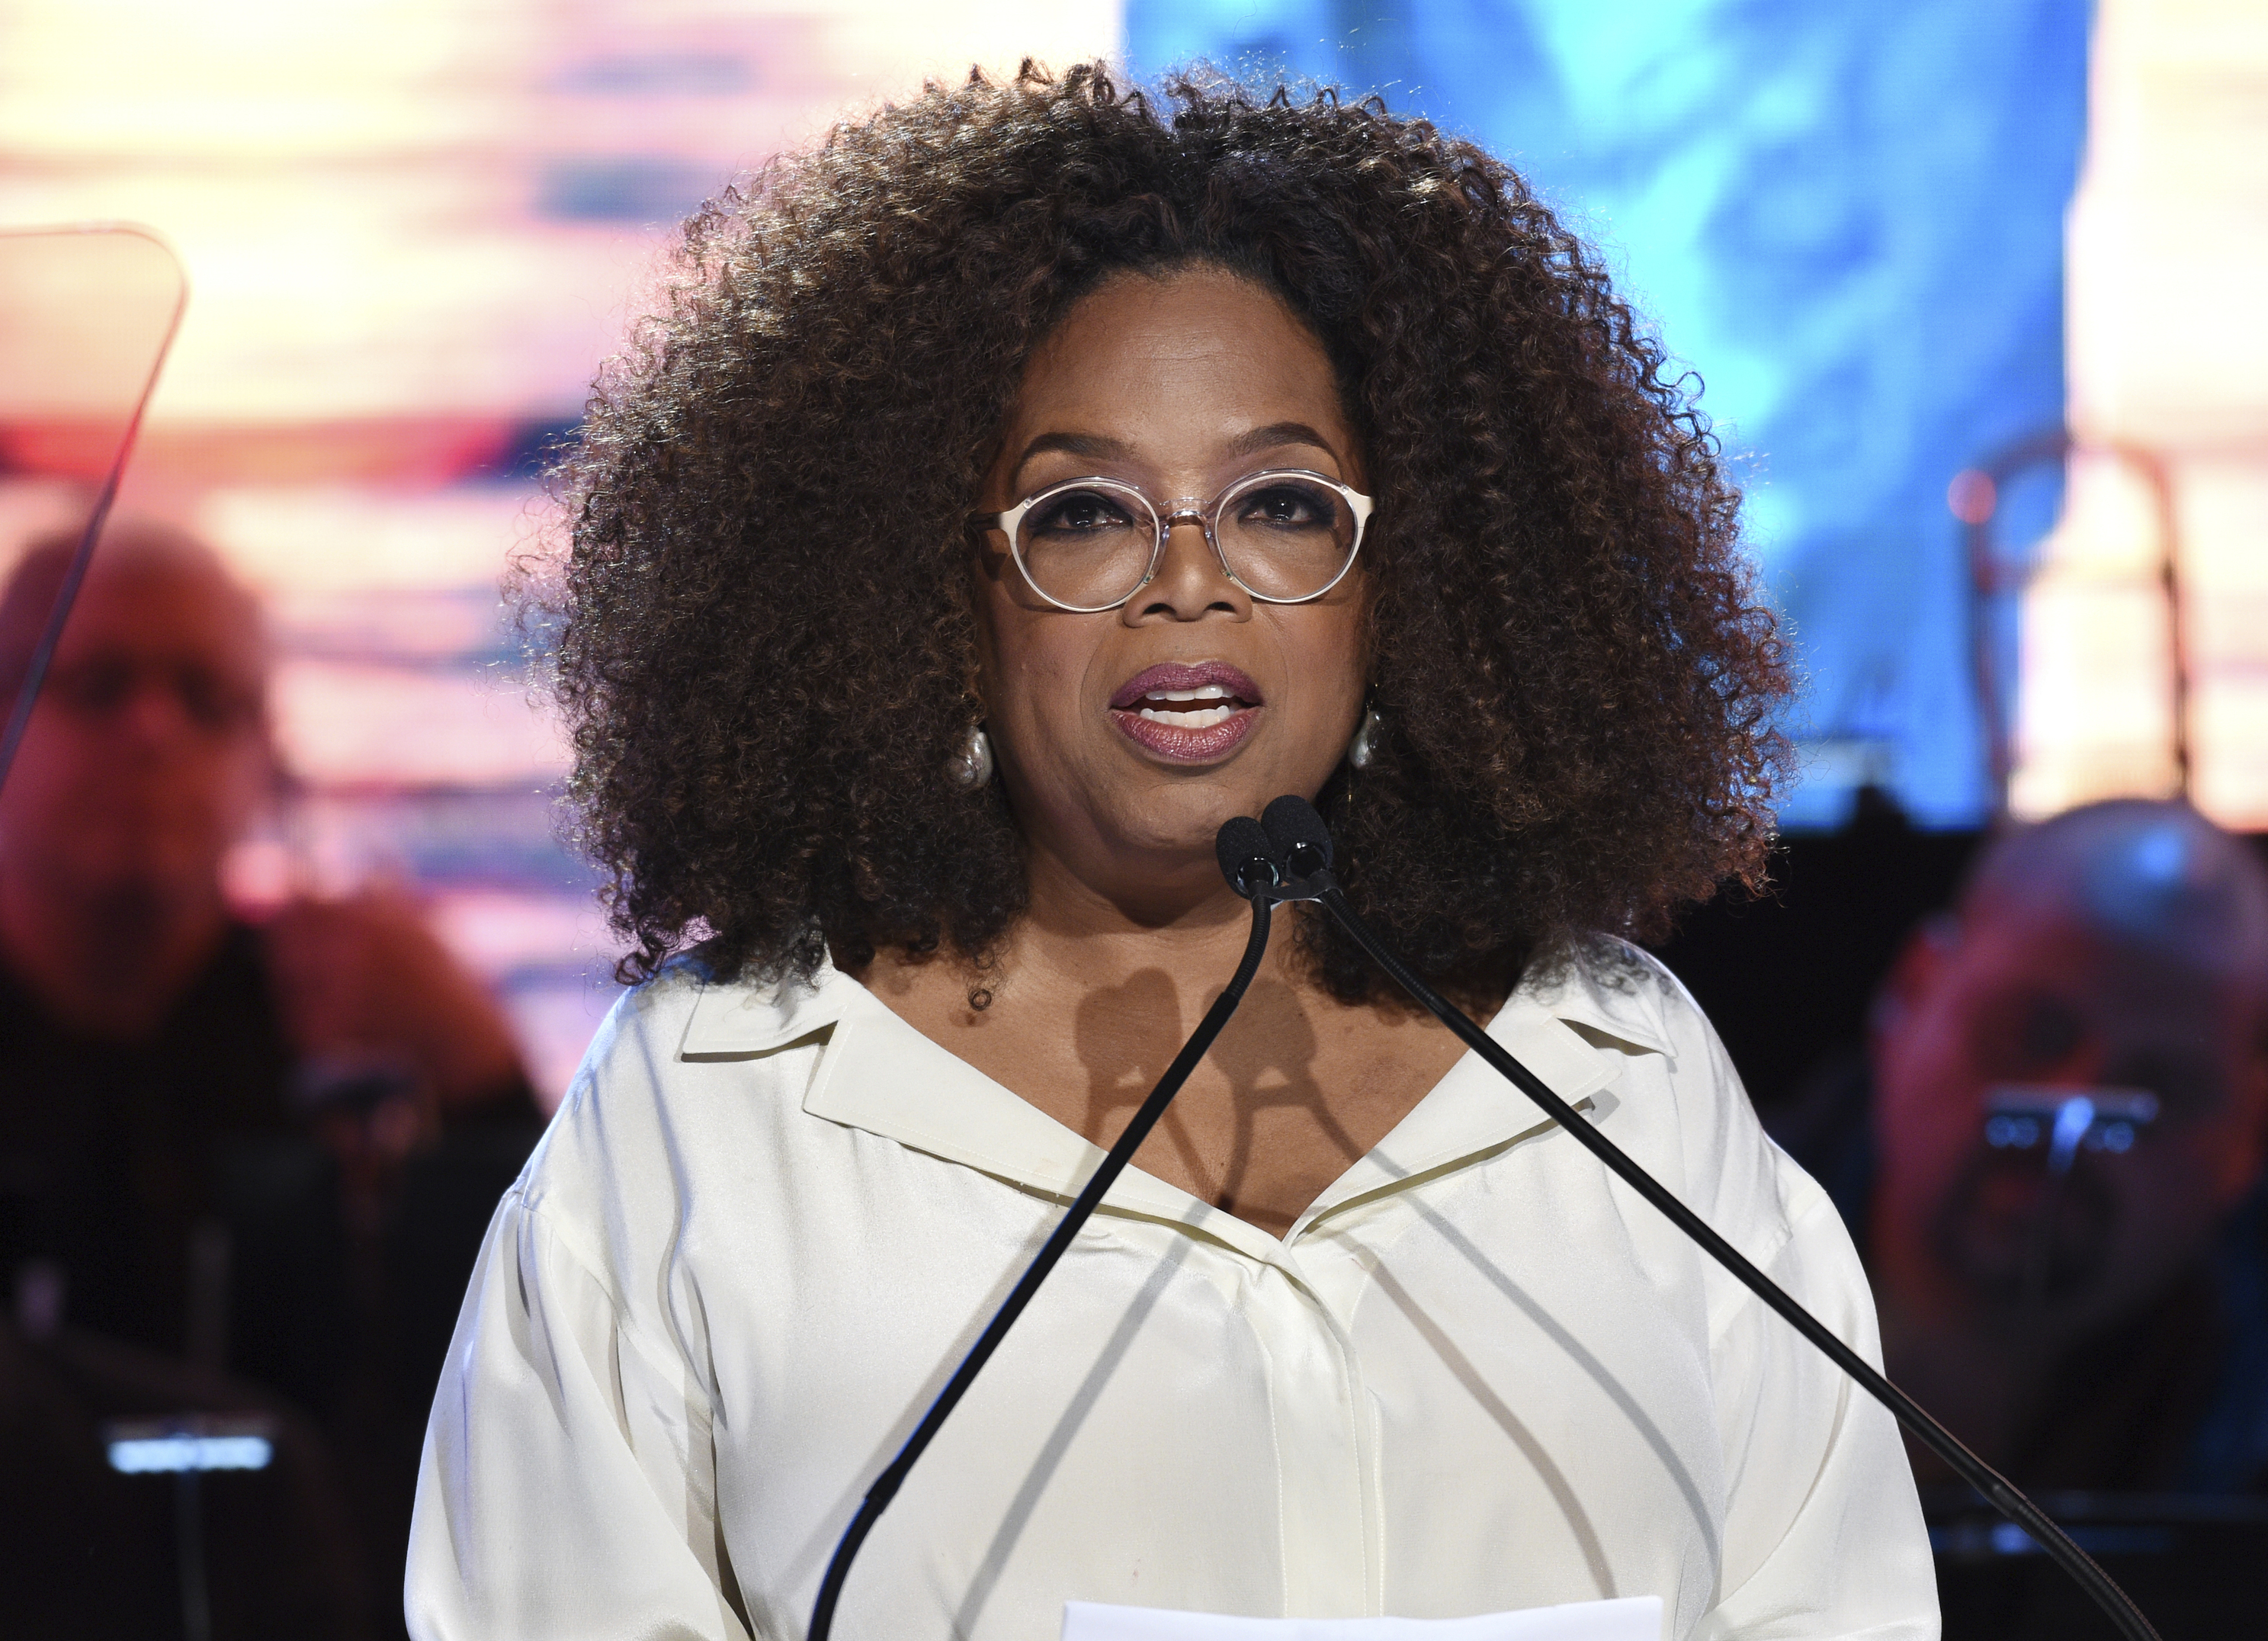 Westlake Legal Group oprah-ap-image Oprah speaks out on mass shootings: What 'people are missing is a core moral center' Sasha Savitsky fox-news/us/crime/mass-murder fox-news/entertainment/celebrity-news fox news fnc/entertainment fnc article 894f0ec8-acf7-59f6-a29c-52af5e1bf2b1